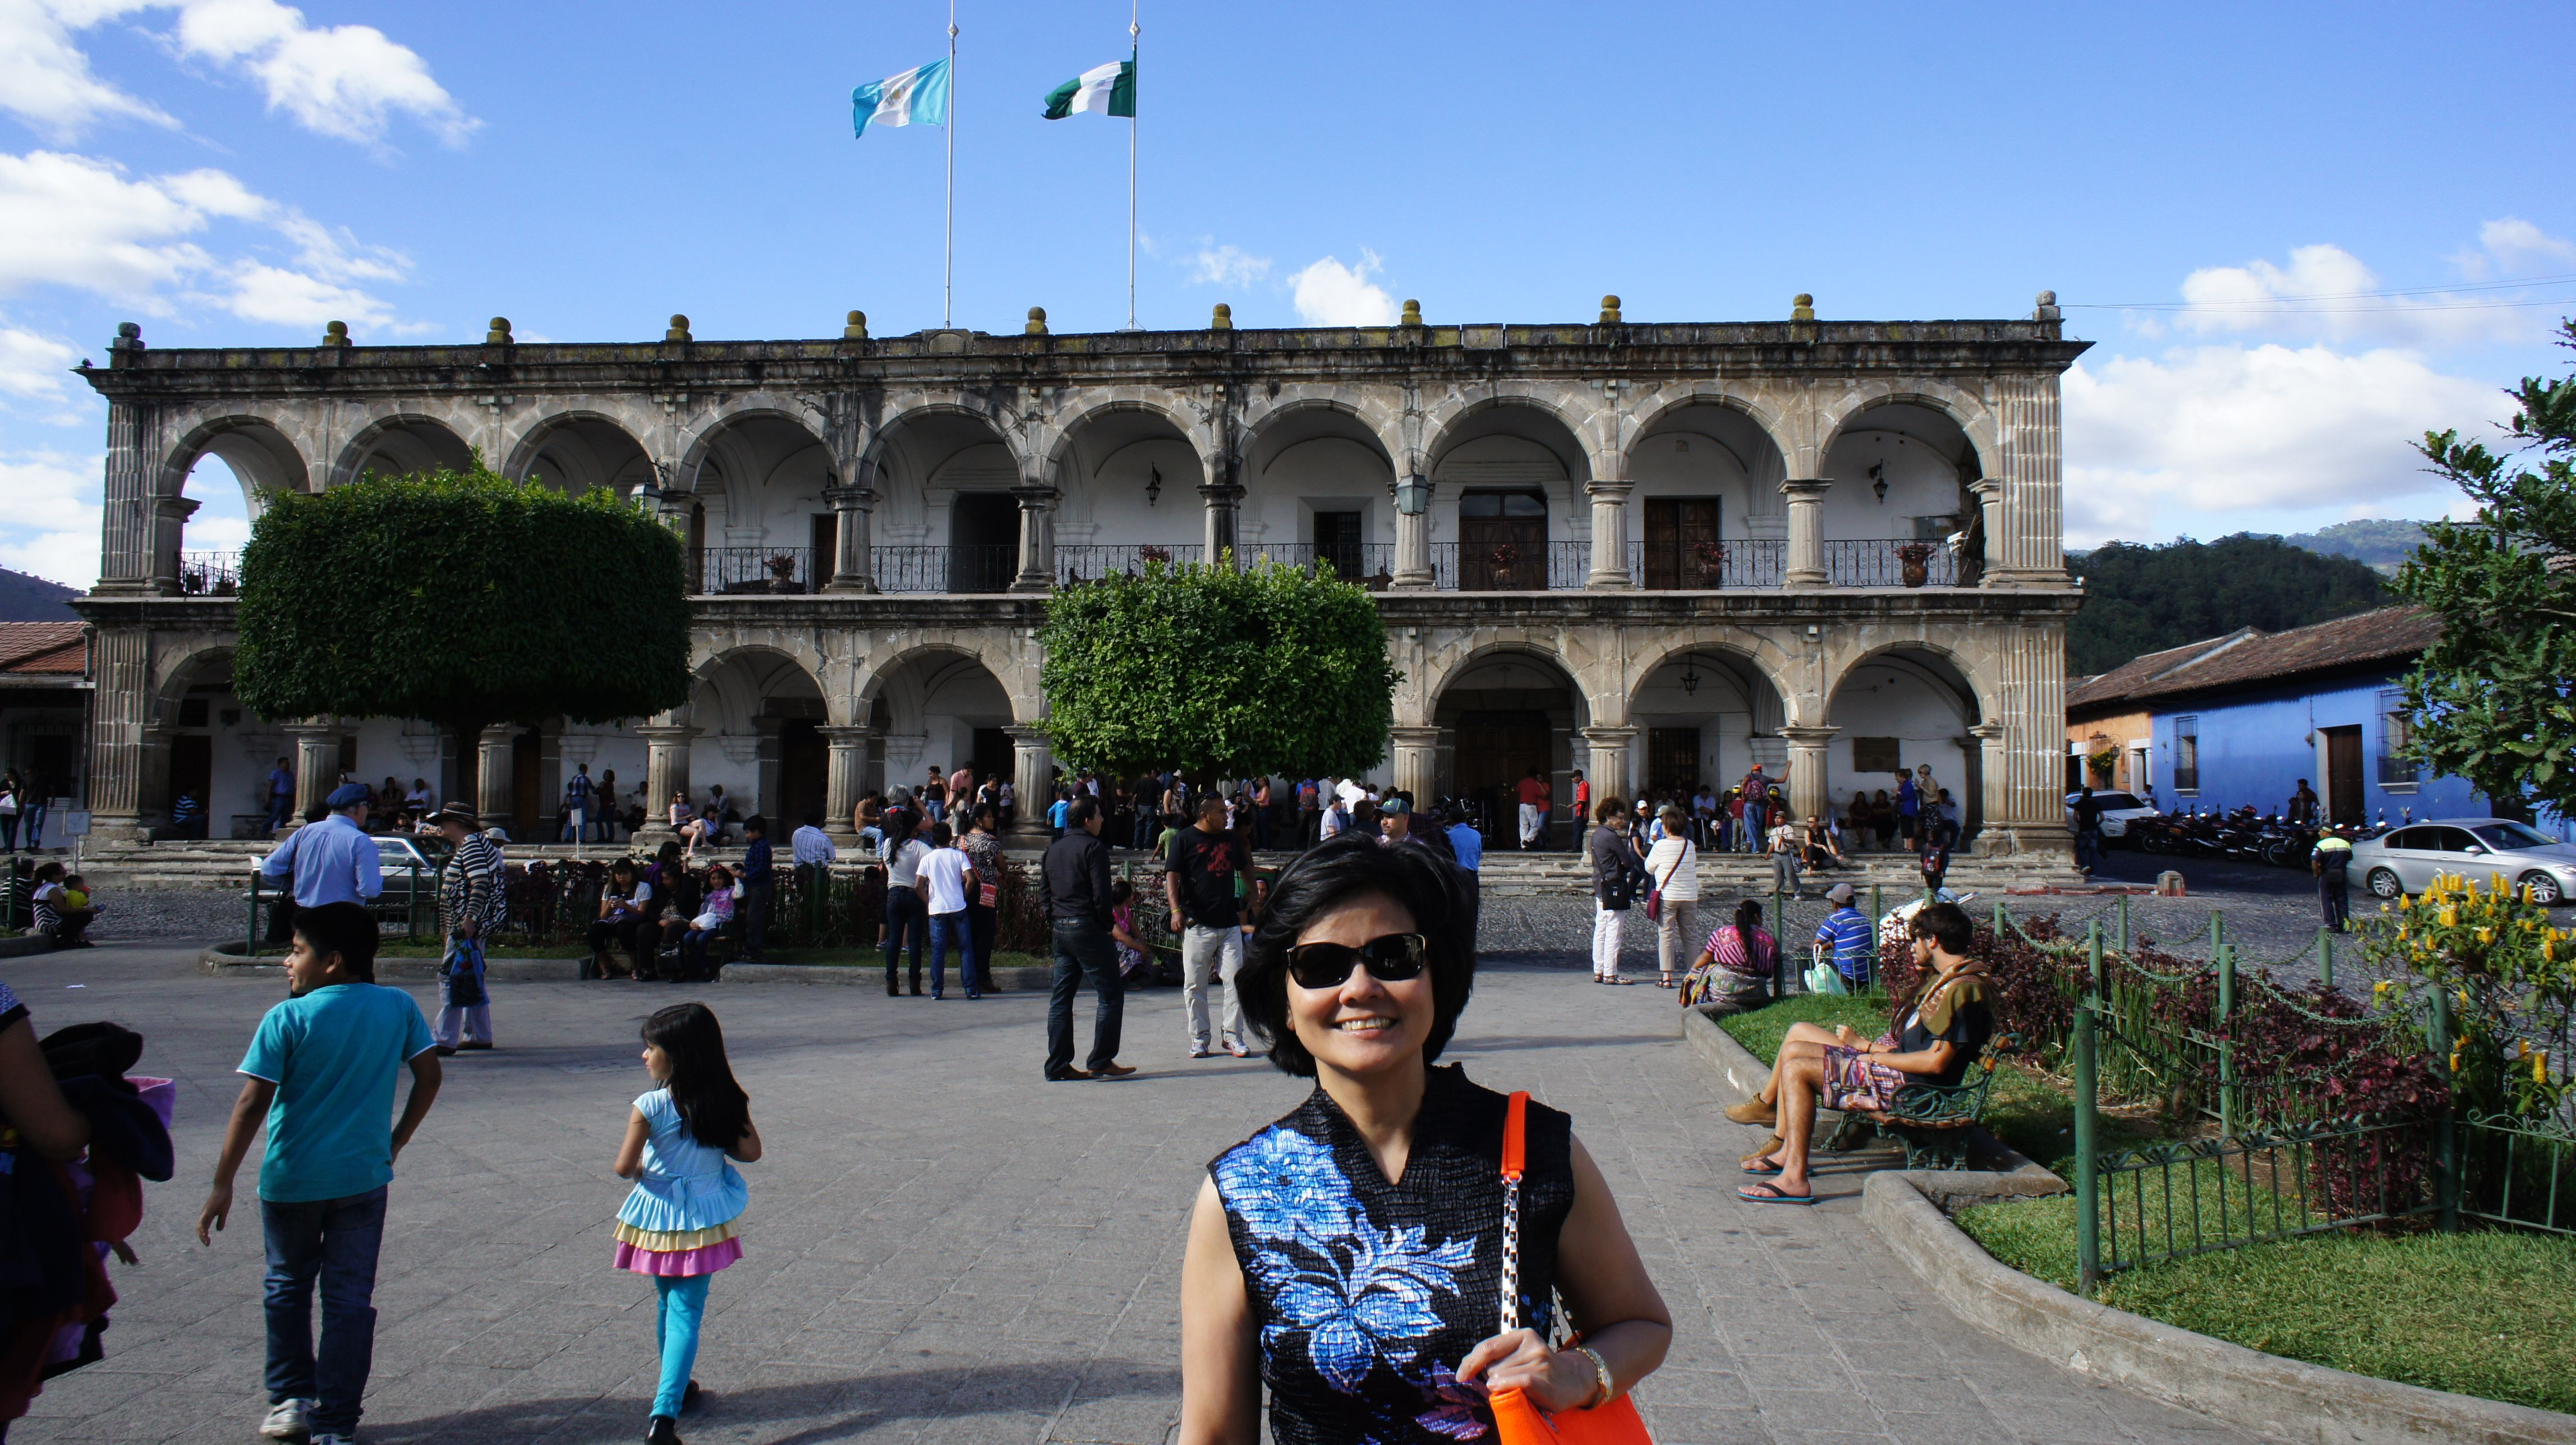 Antigua, Guatemala is a great place to visit